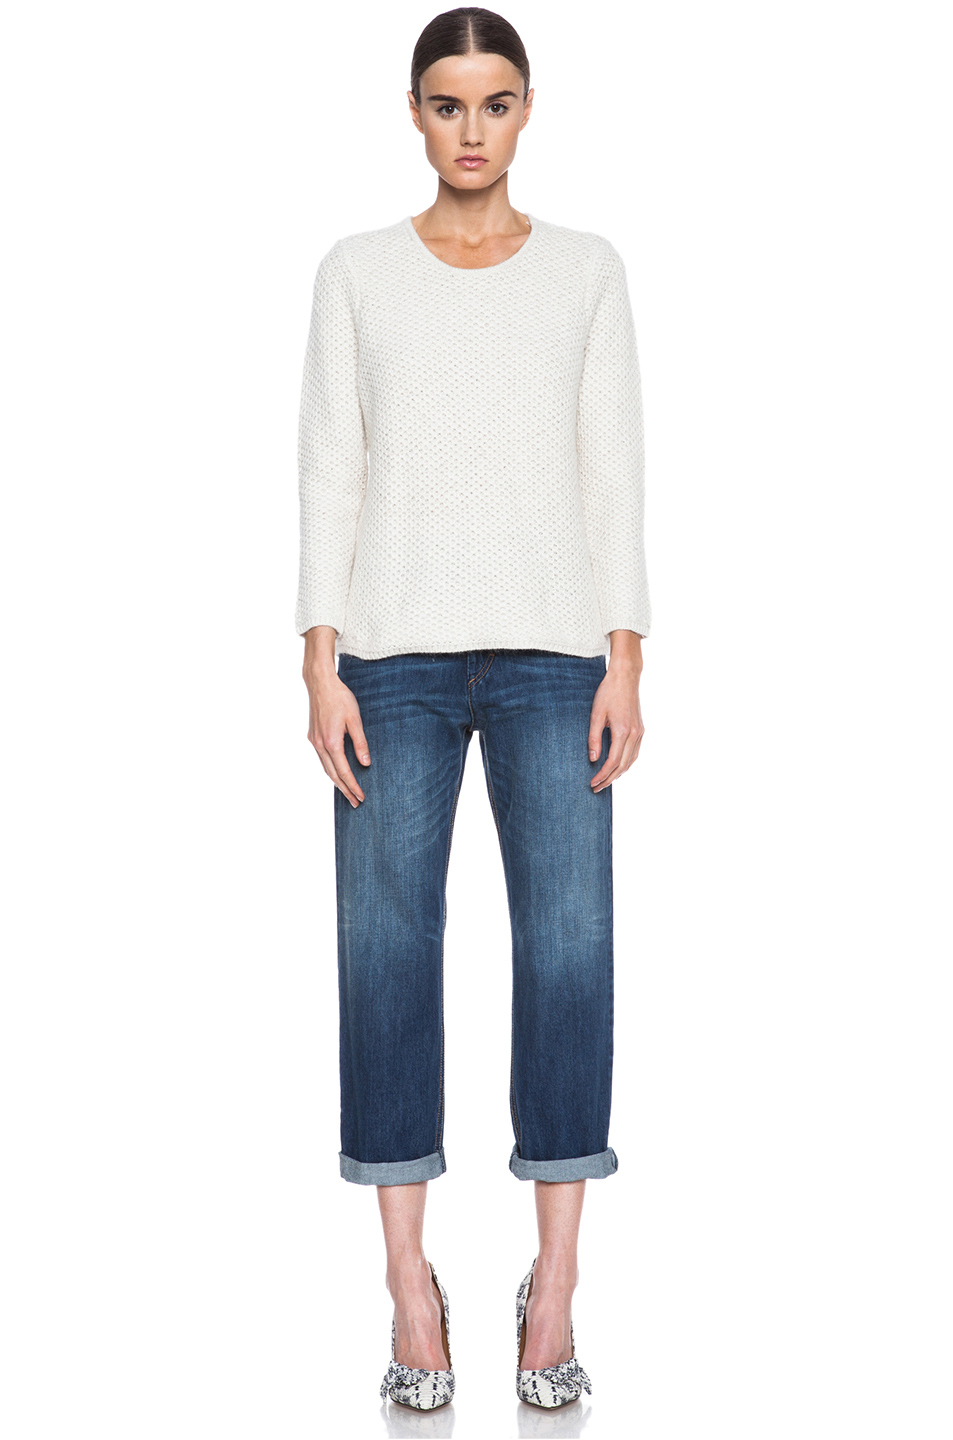 Isabel Marant|Isaac Knit Sweater in Ecru